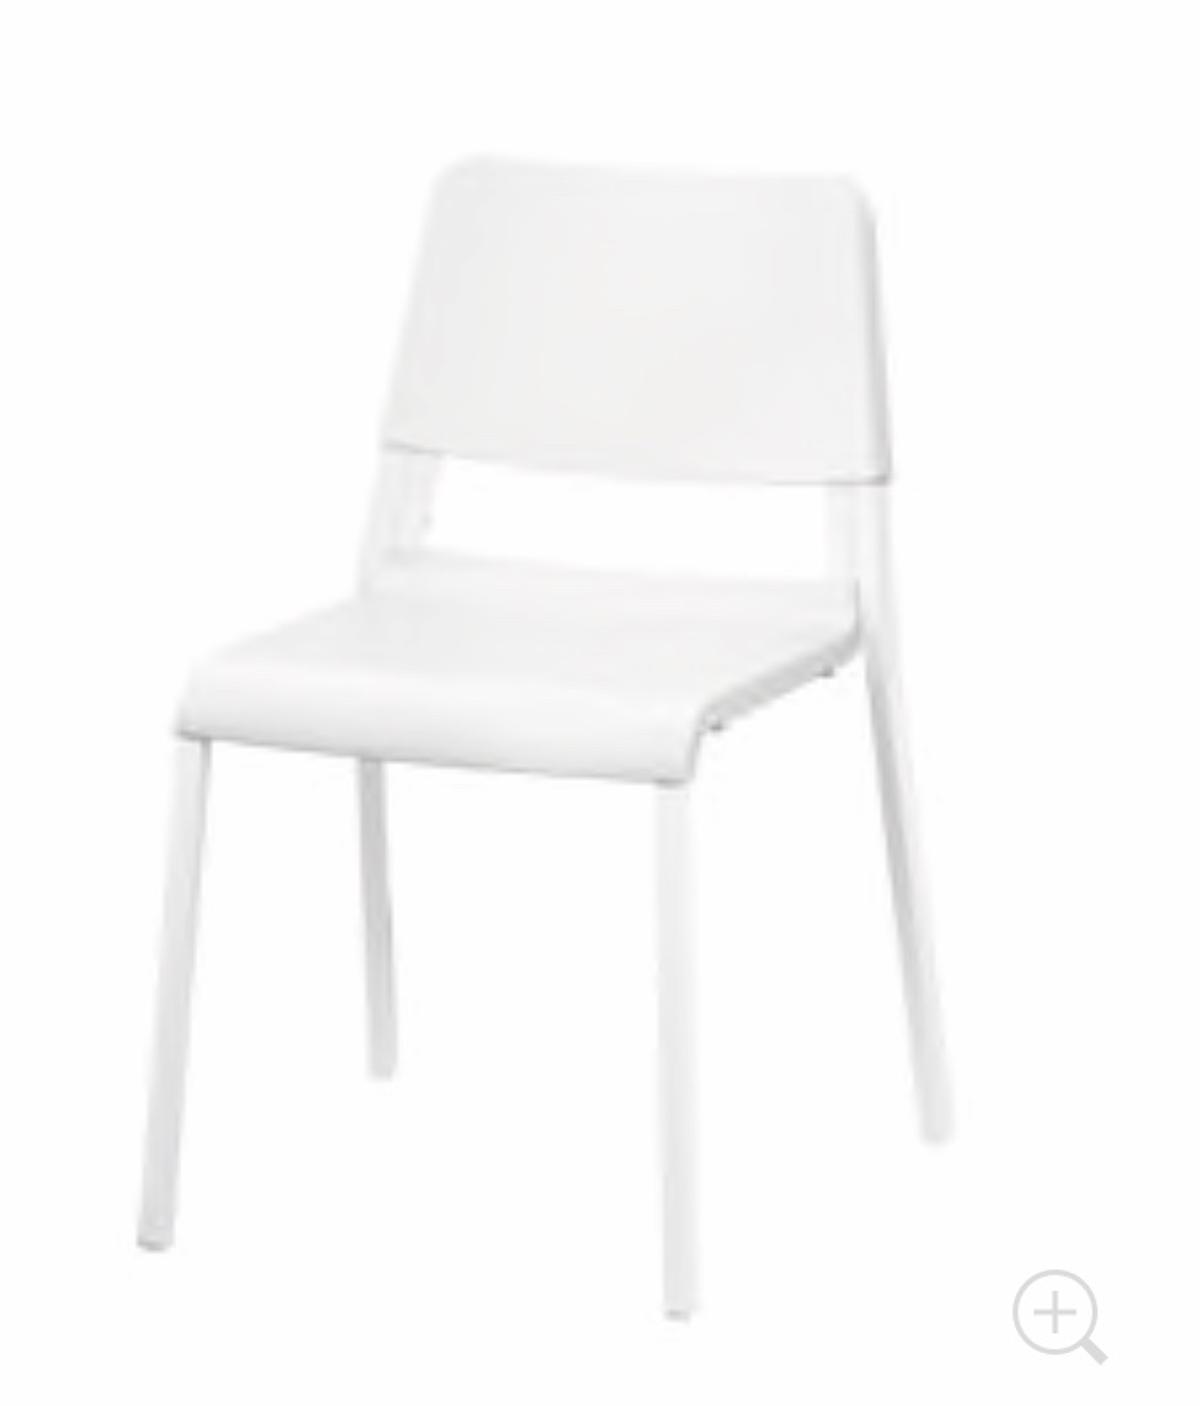 Admirable Ikea Dining Table Set In Bd5 Bradford For 90 00 For Sale Ocoug Best Dining Table And Chair Ideas Images Ocougorg